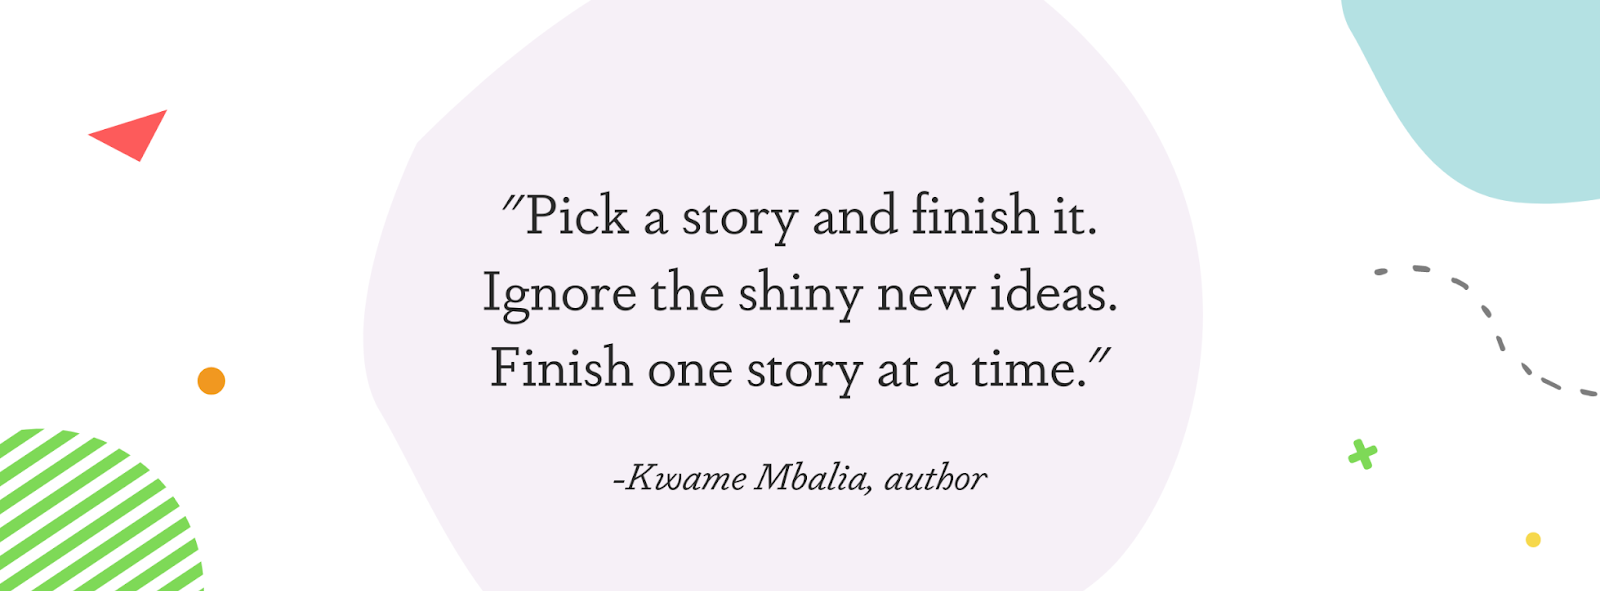 """Image displaying a quote from author Kwame Mbalia: """"Pick a story and finish it. Ignore the shiny new ideas. Finish one story at a time."""""""